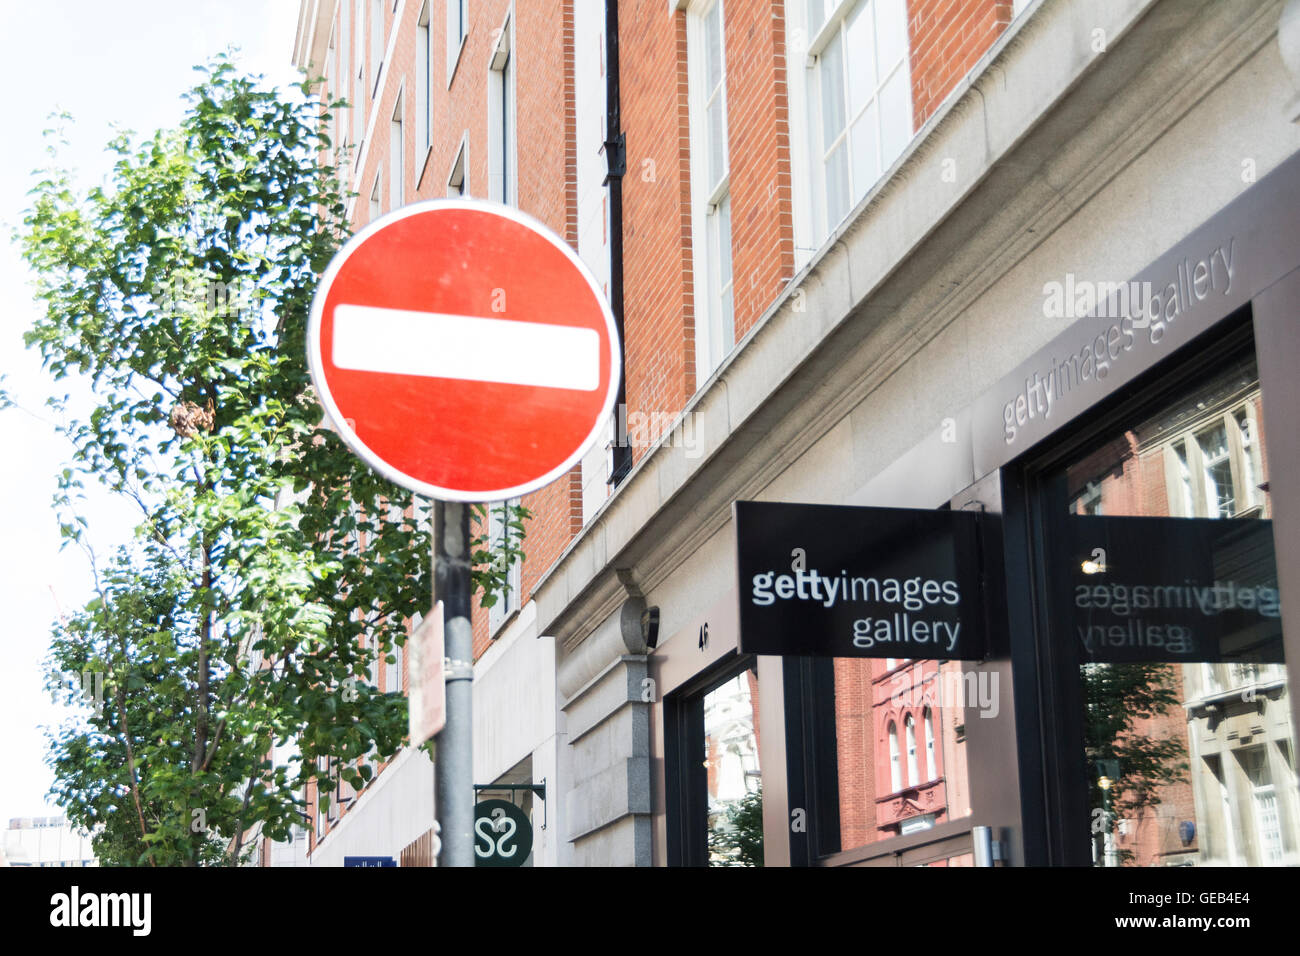 A no entry sign outside the Getty Images Gallery on Eastcastle Street in London's West End. - Stock Image